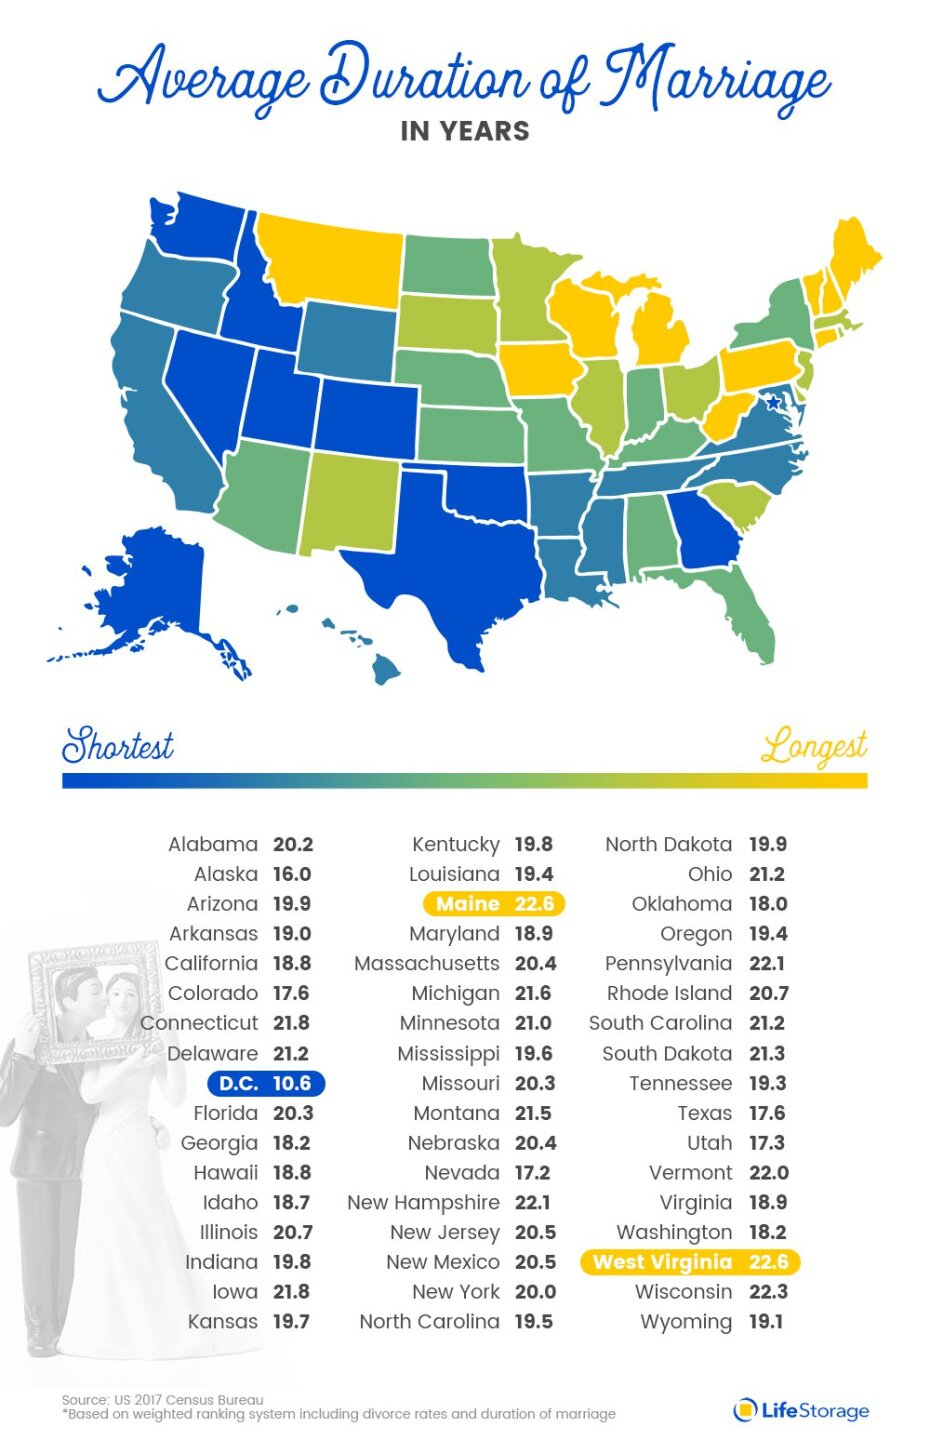 1Life-Storage-US-Marriage-Average-Duration-Years-By-State.jpg